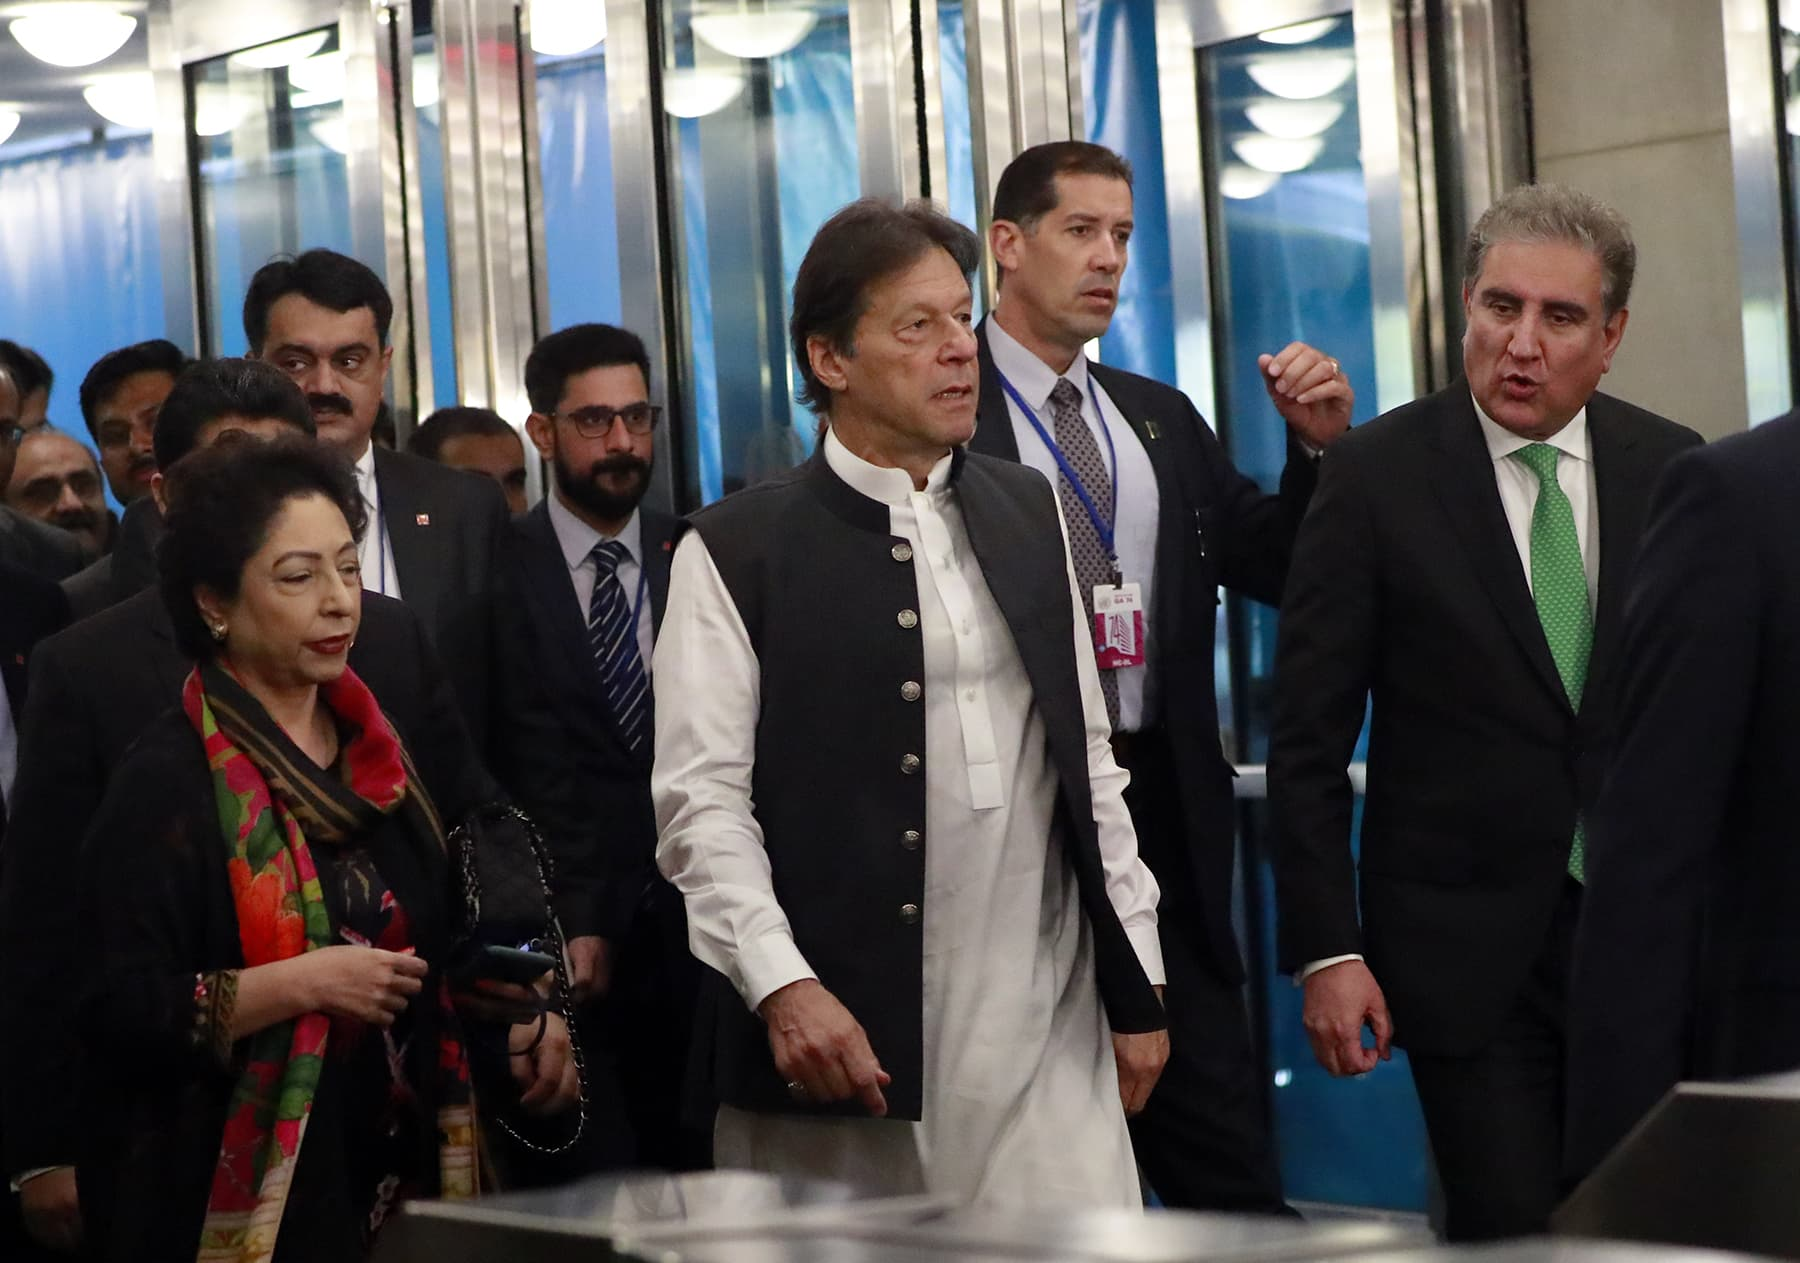 Prime Minister Imran Khan arrives ahead of the start of the 74th session of the United Nations General Assembly at UN headquarters in New York City, New York, on Tuesday. — Reuters